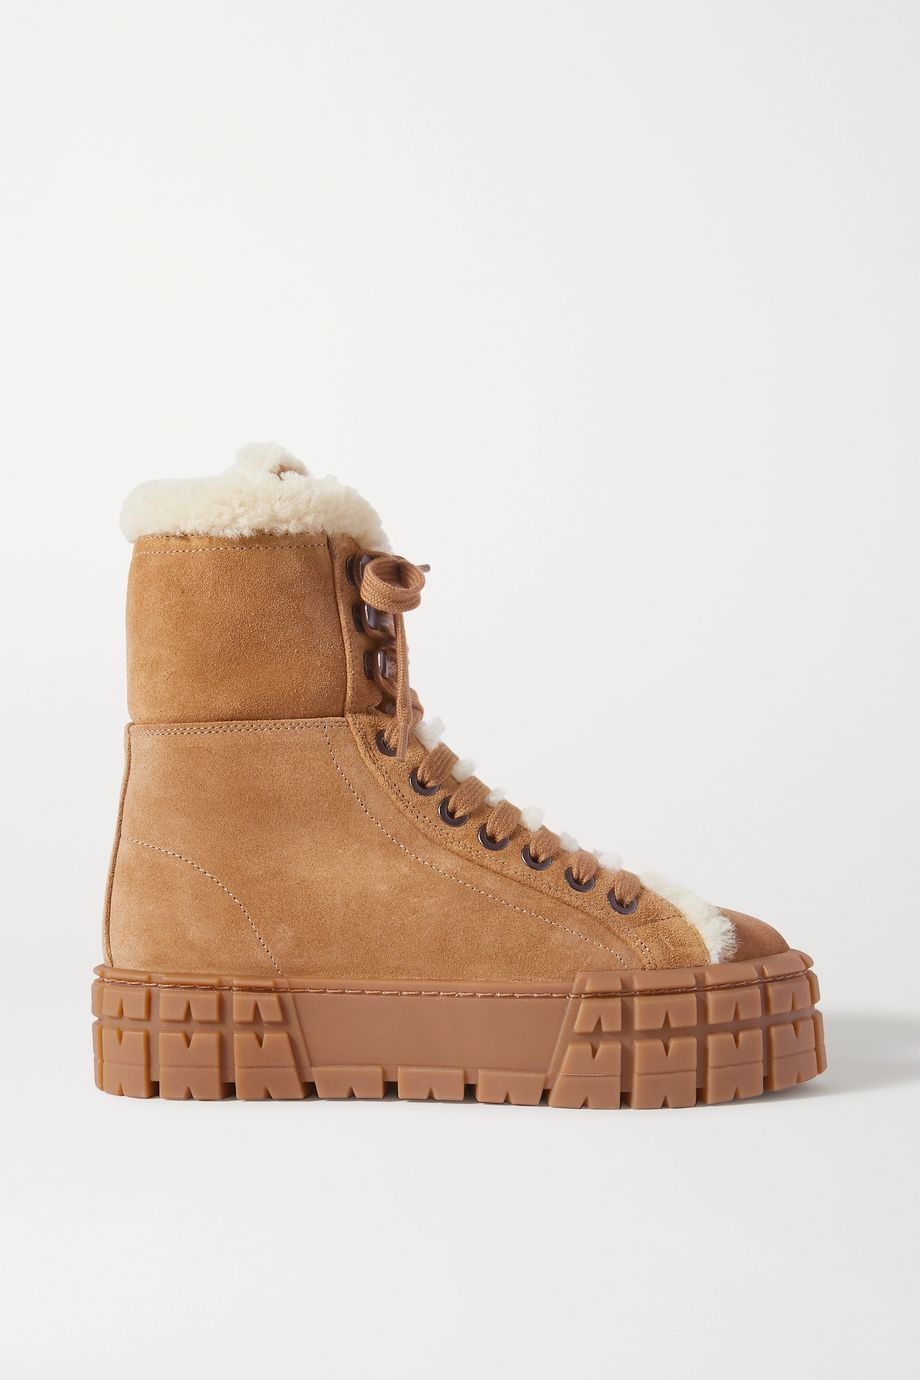 Prada Wheel shearling-lined suede platform ankle boots